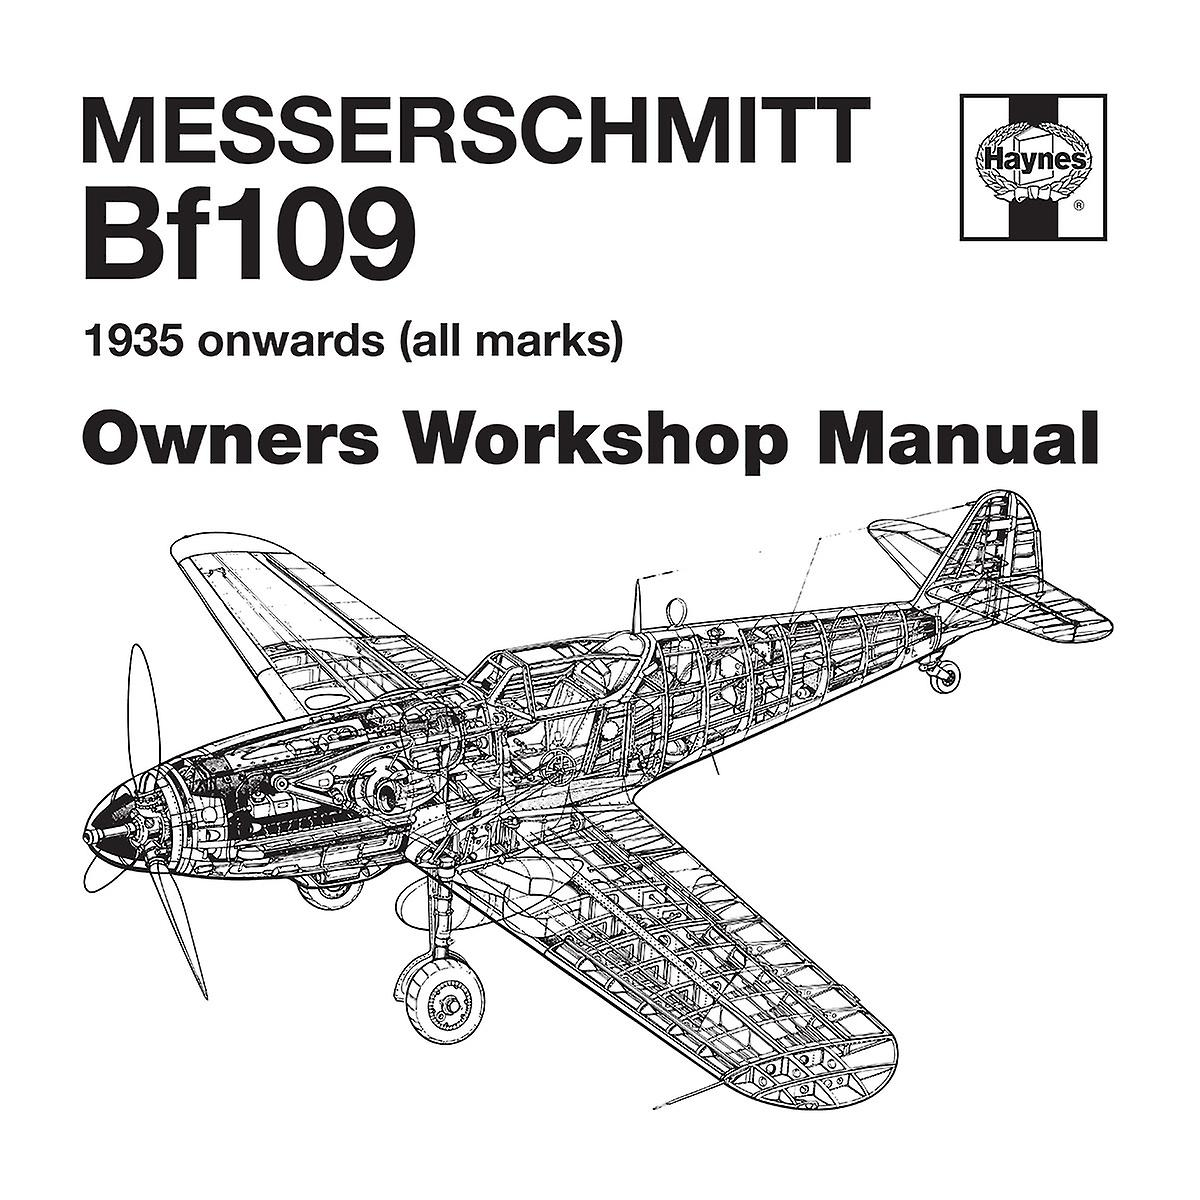 Haynes Owners Workshop Manual Messerschmitt Bf109 vrouwen